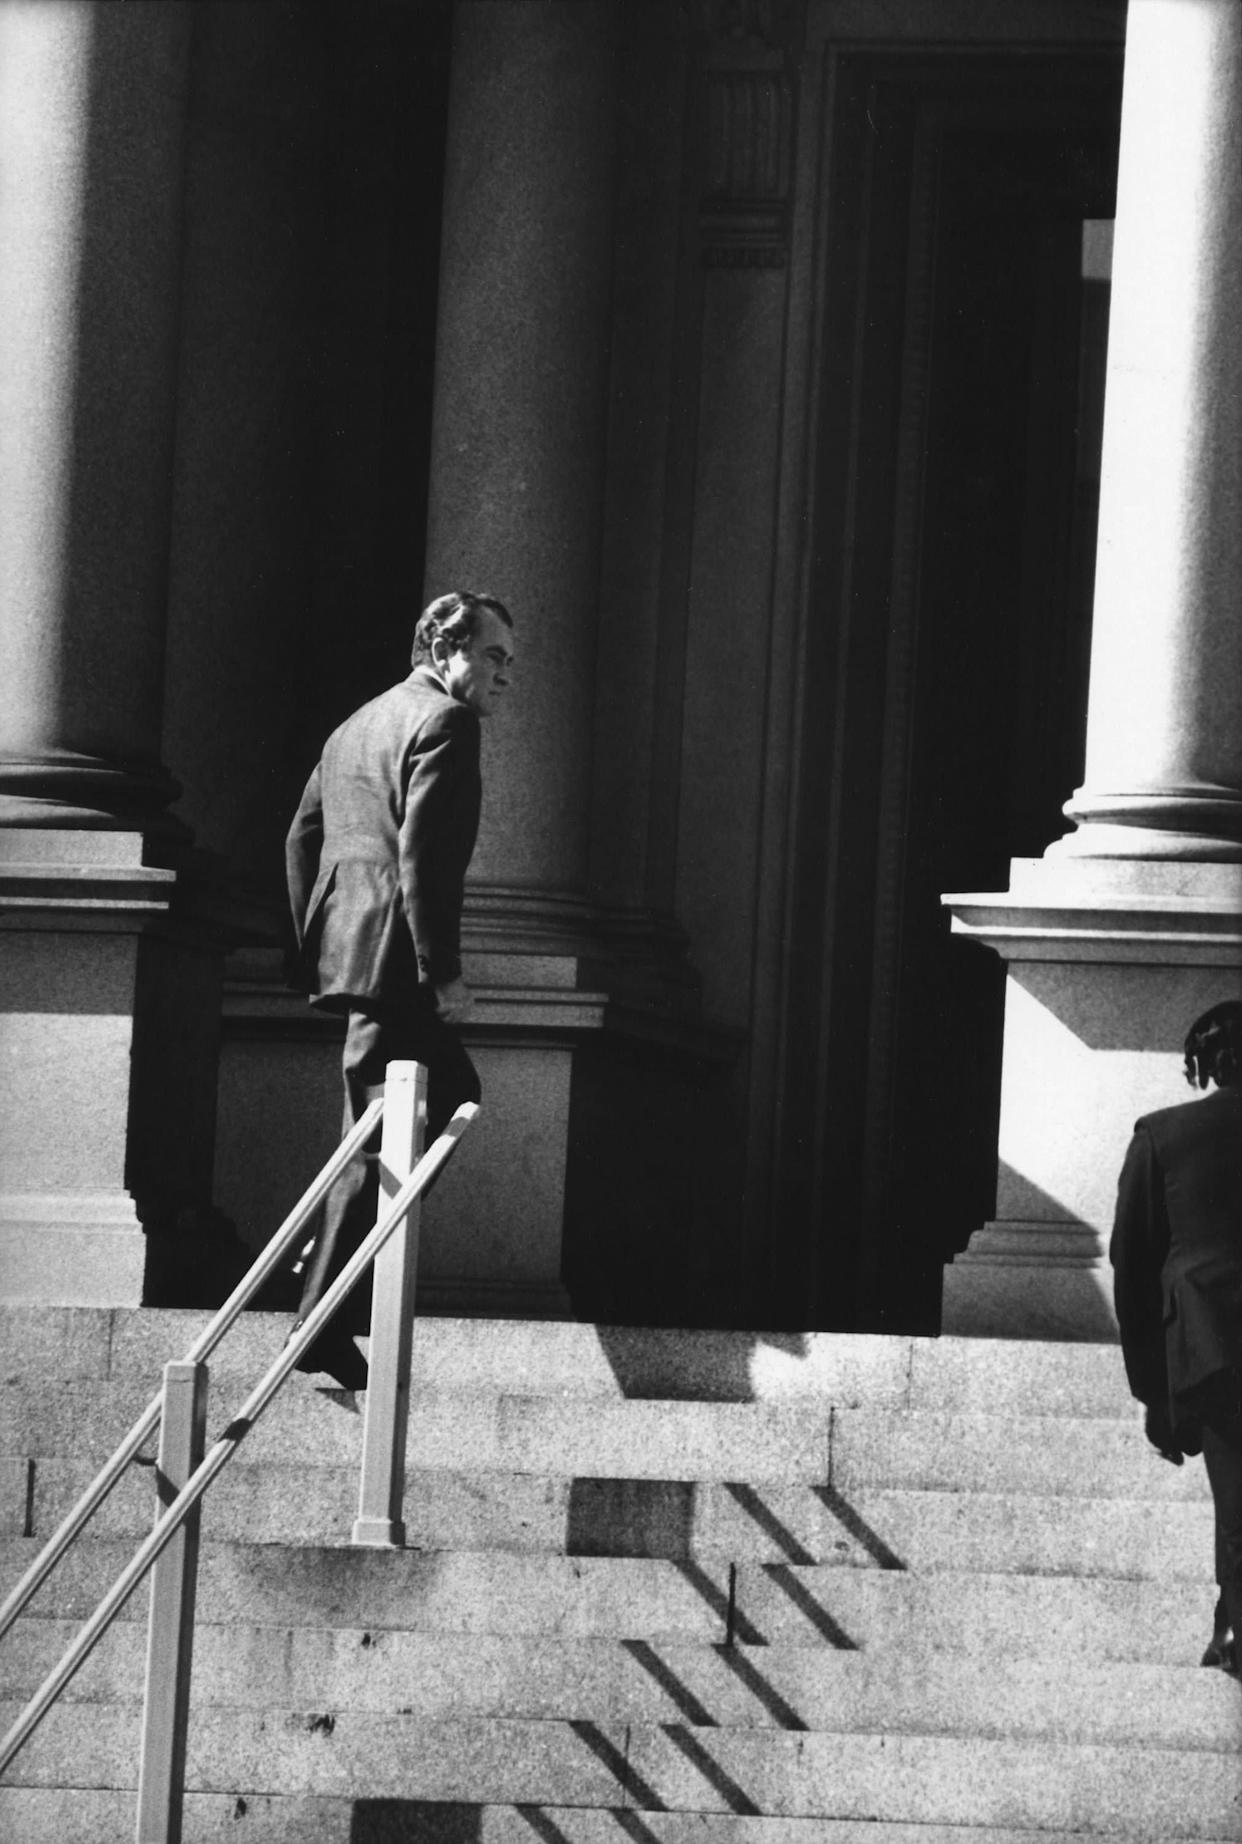 WASHINGTON - OCTOBER 25: (NO U.S. TABLOID SALES) US President Richard Nixon hurries up the steps of the Executive Office Building after briefing Congressional leaders in the Middle East Crisis on October, 25 1973 in Washington, DC. (Photo by David Hume Kennerly/Getty Images)